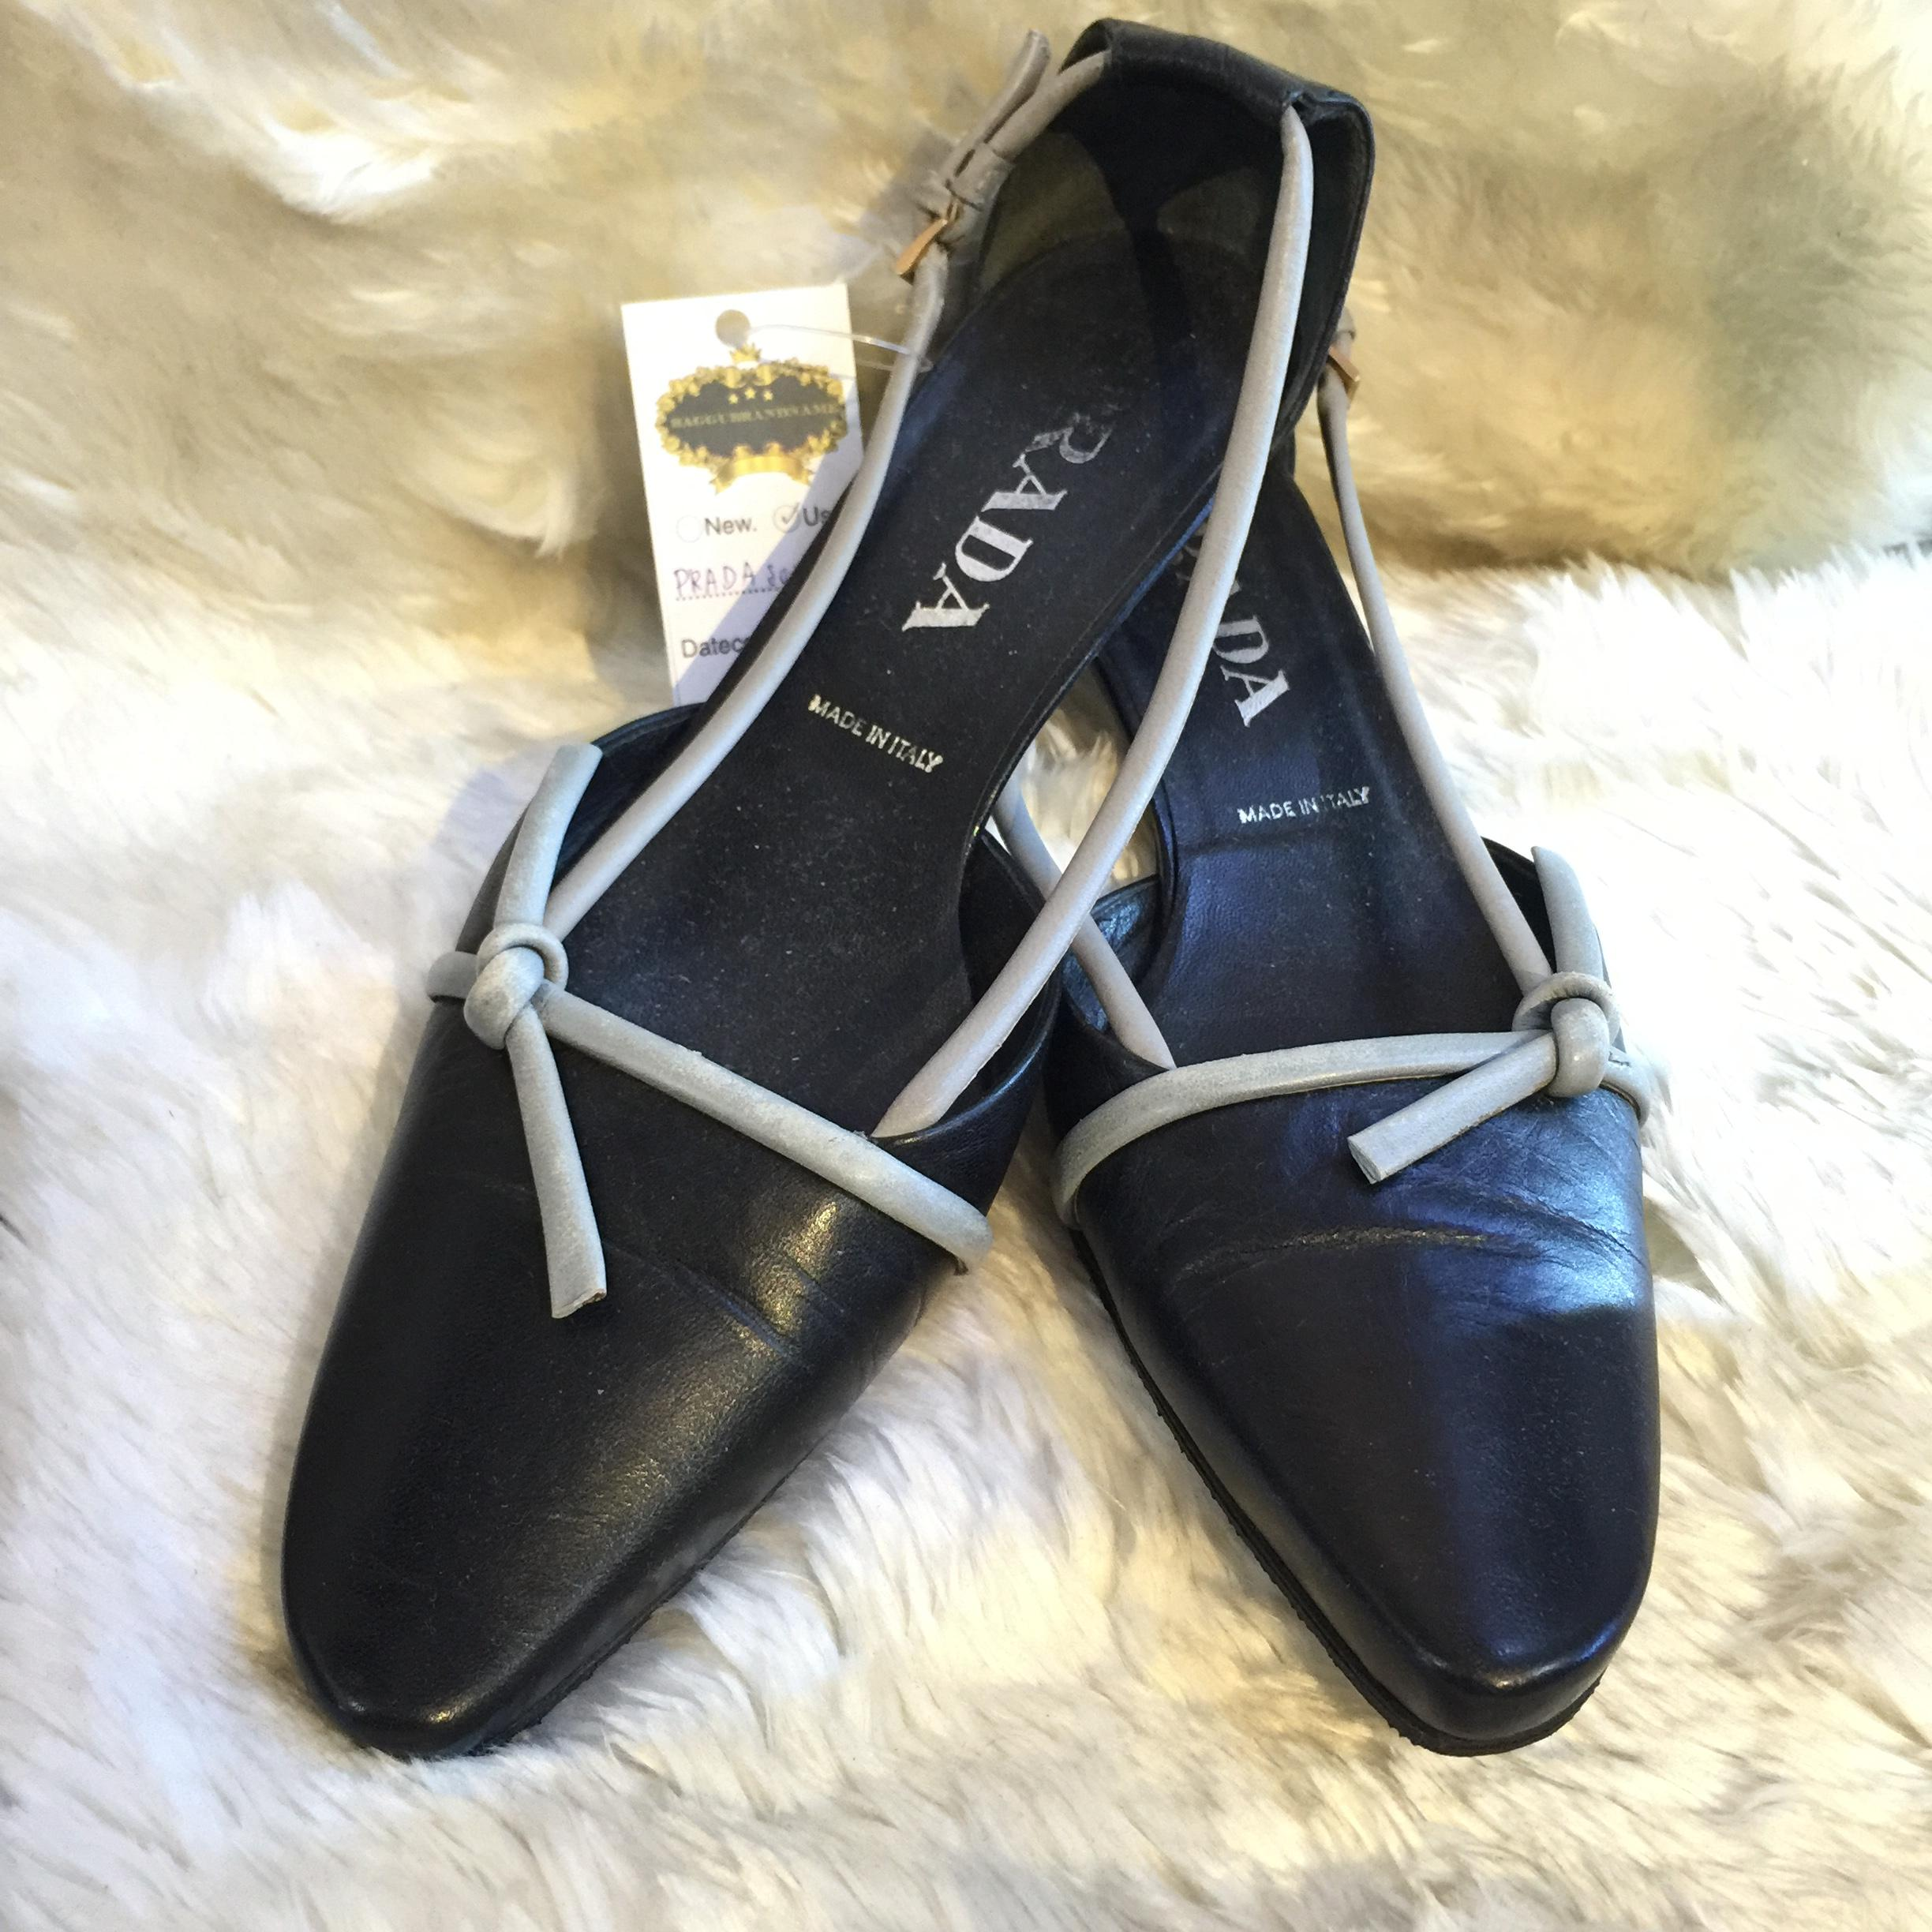 PRADA black shoes